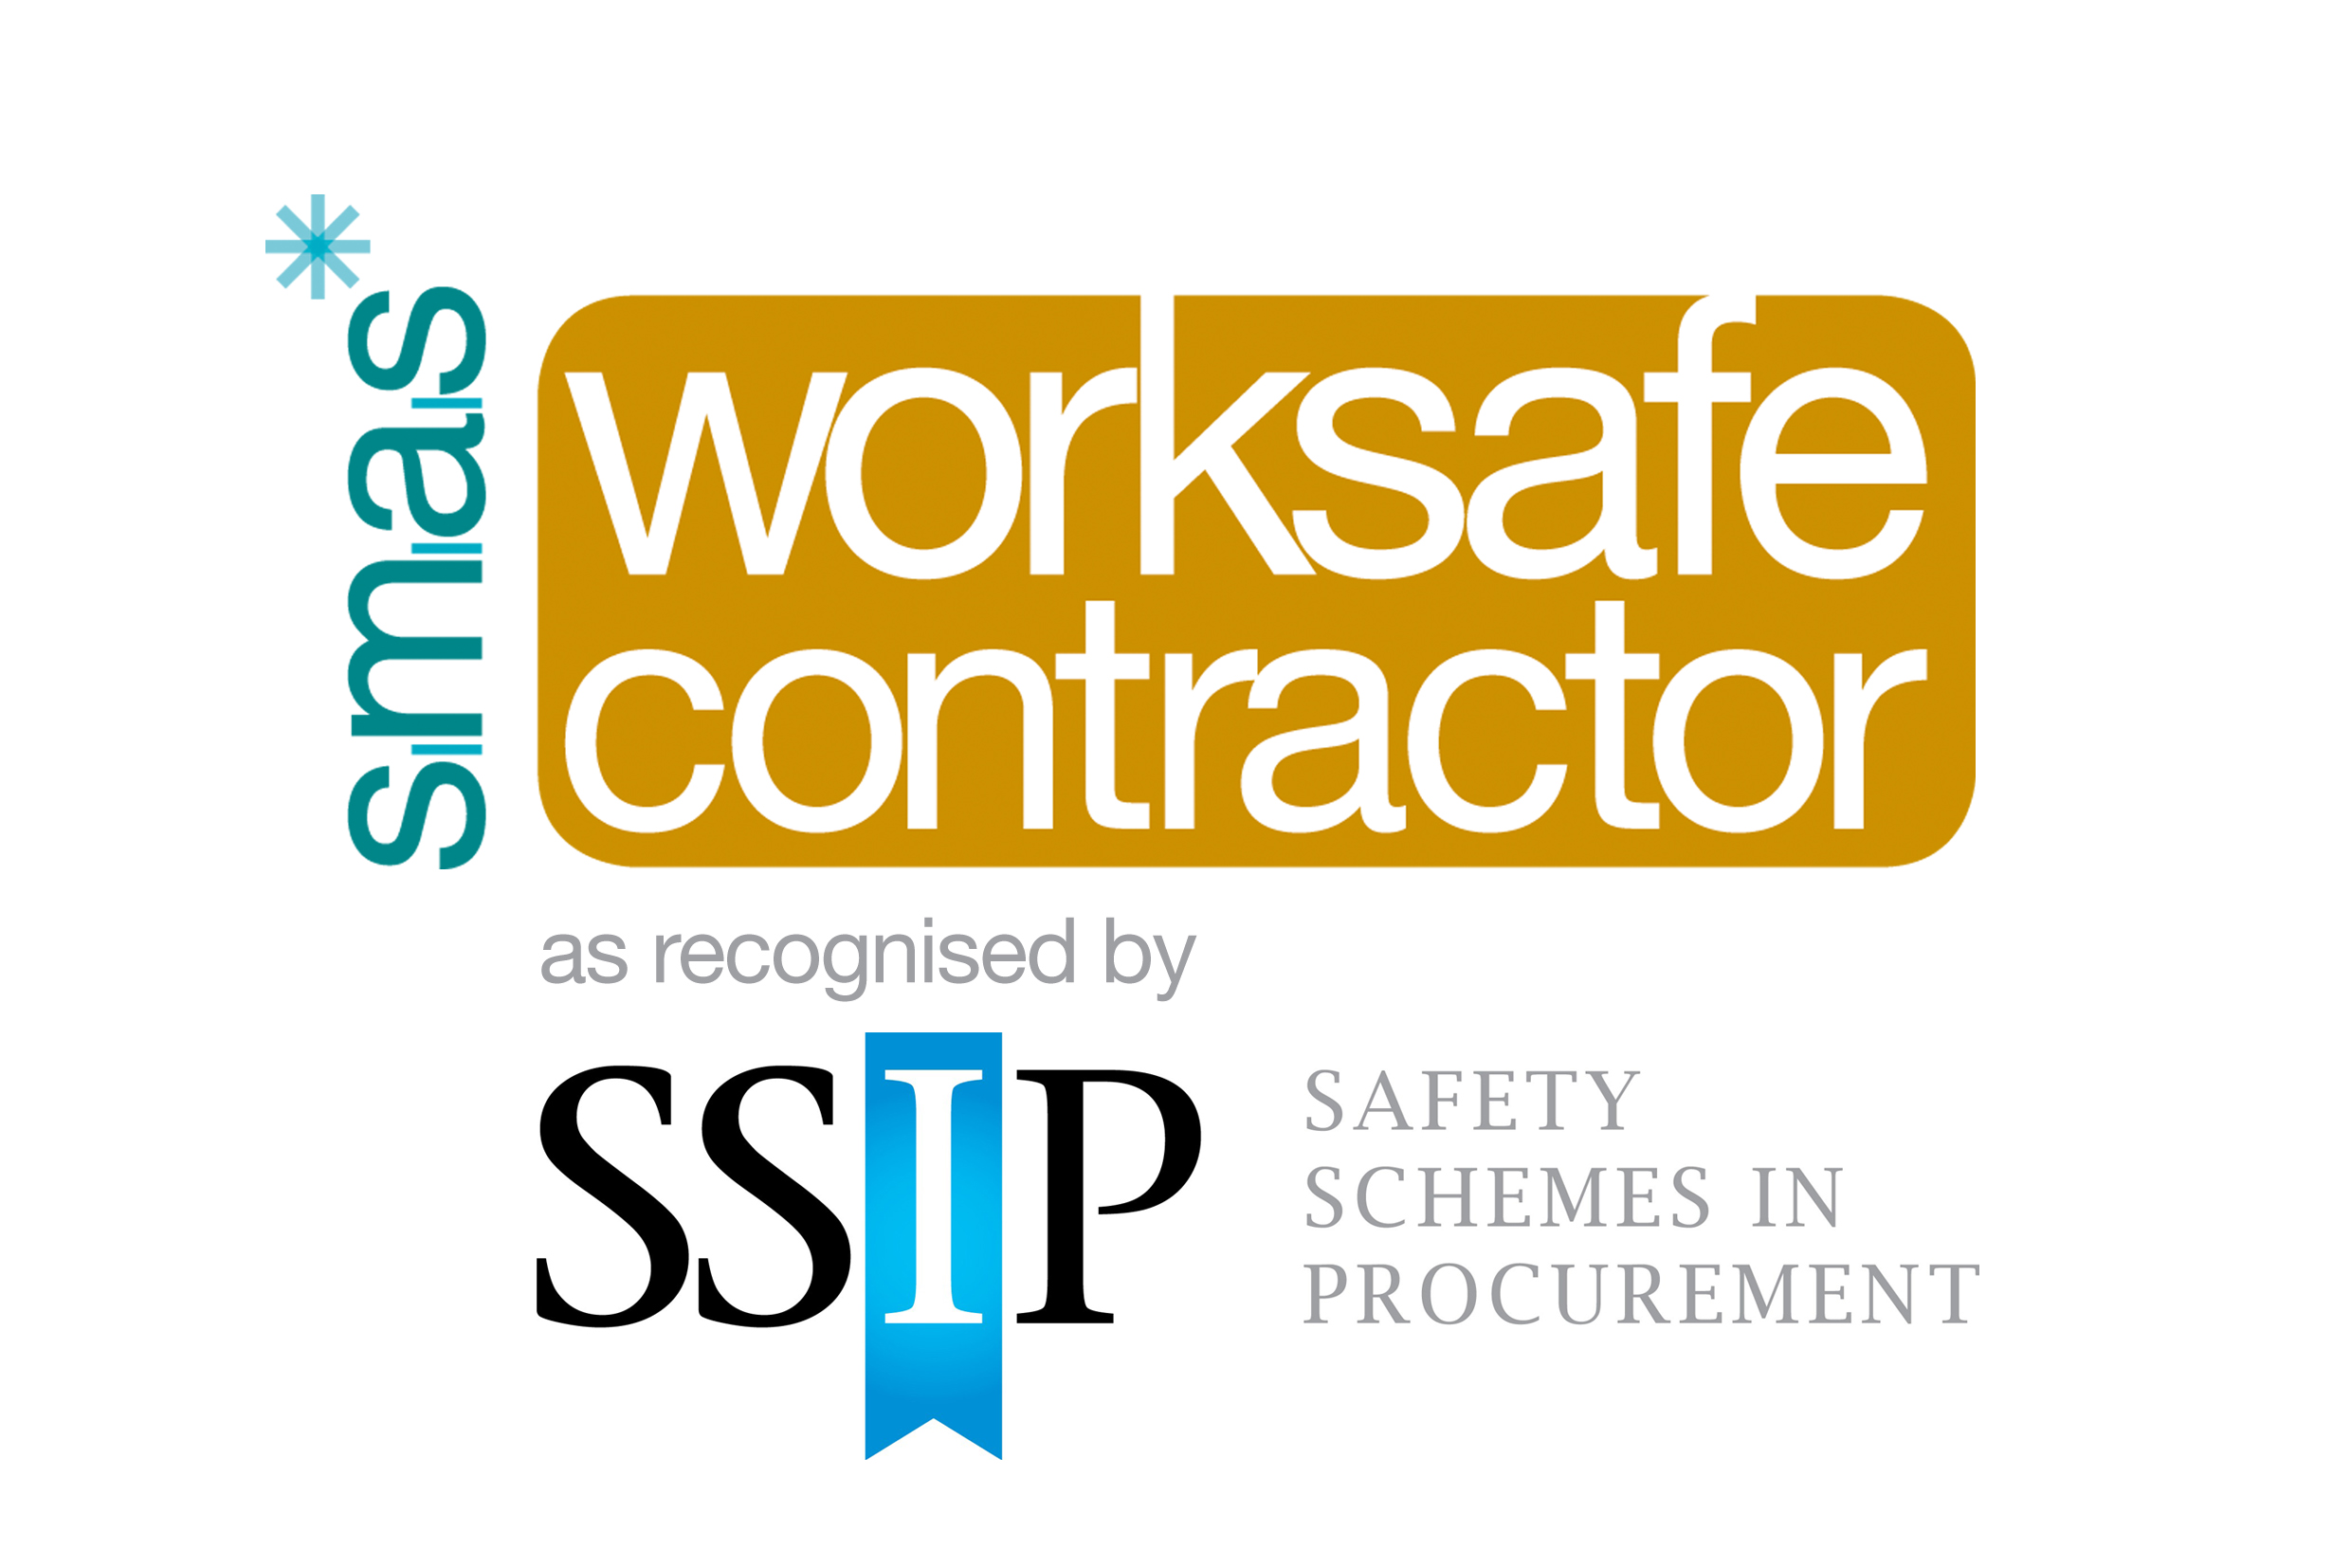 20130627091147Worksafe20contractor20Logo20Portrait.jpg